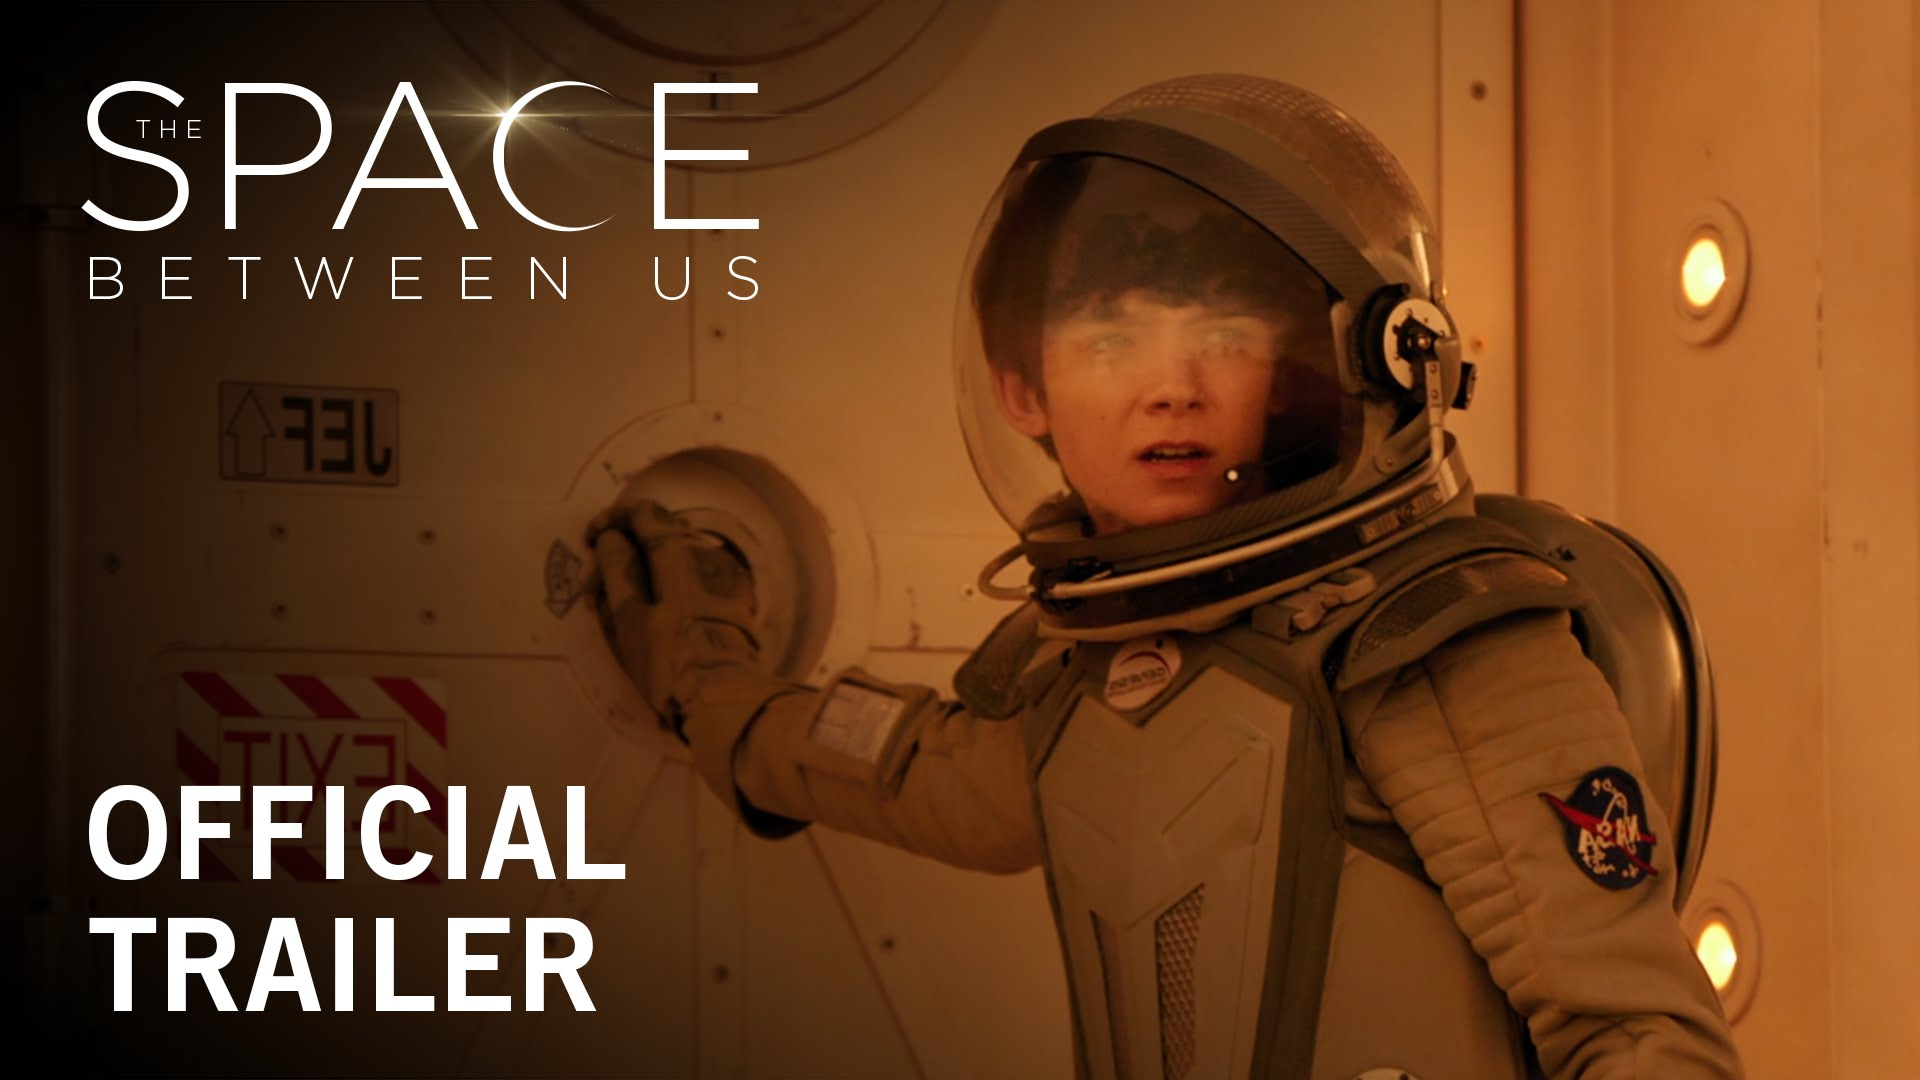 The Space Between Us (2017) video/trailer